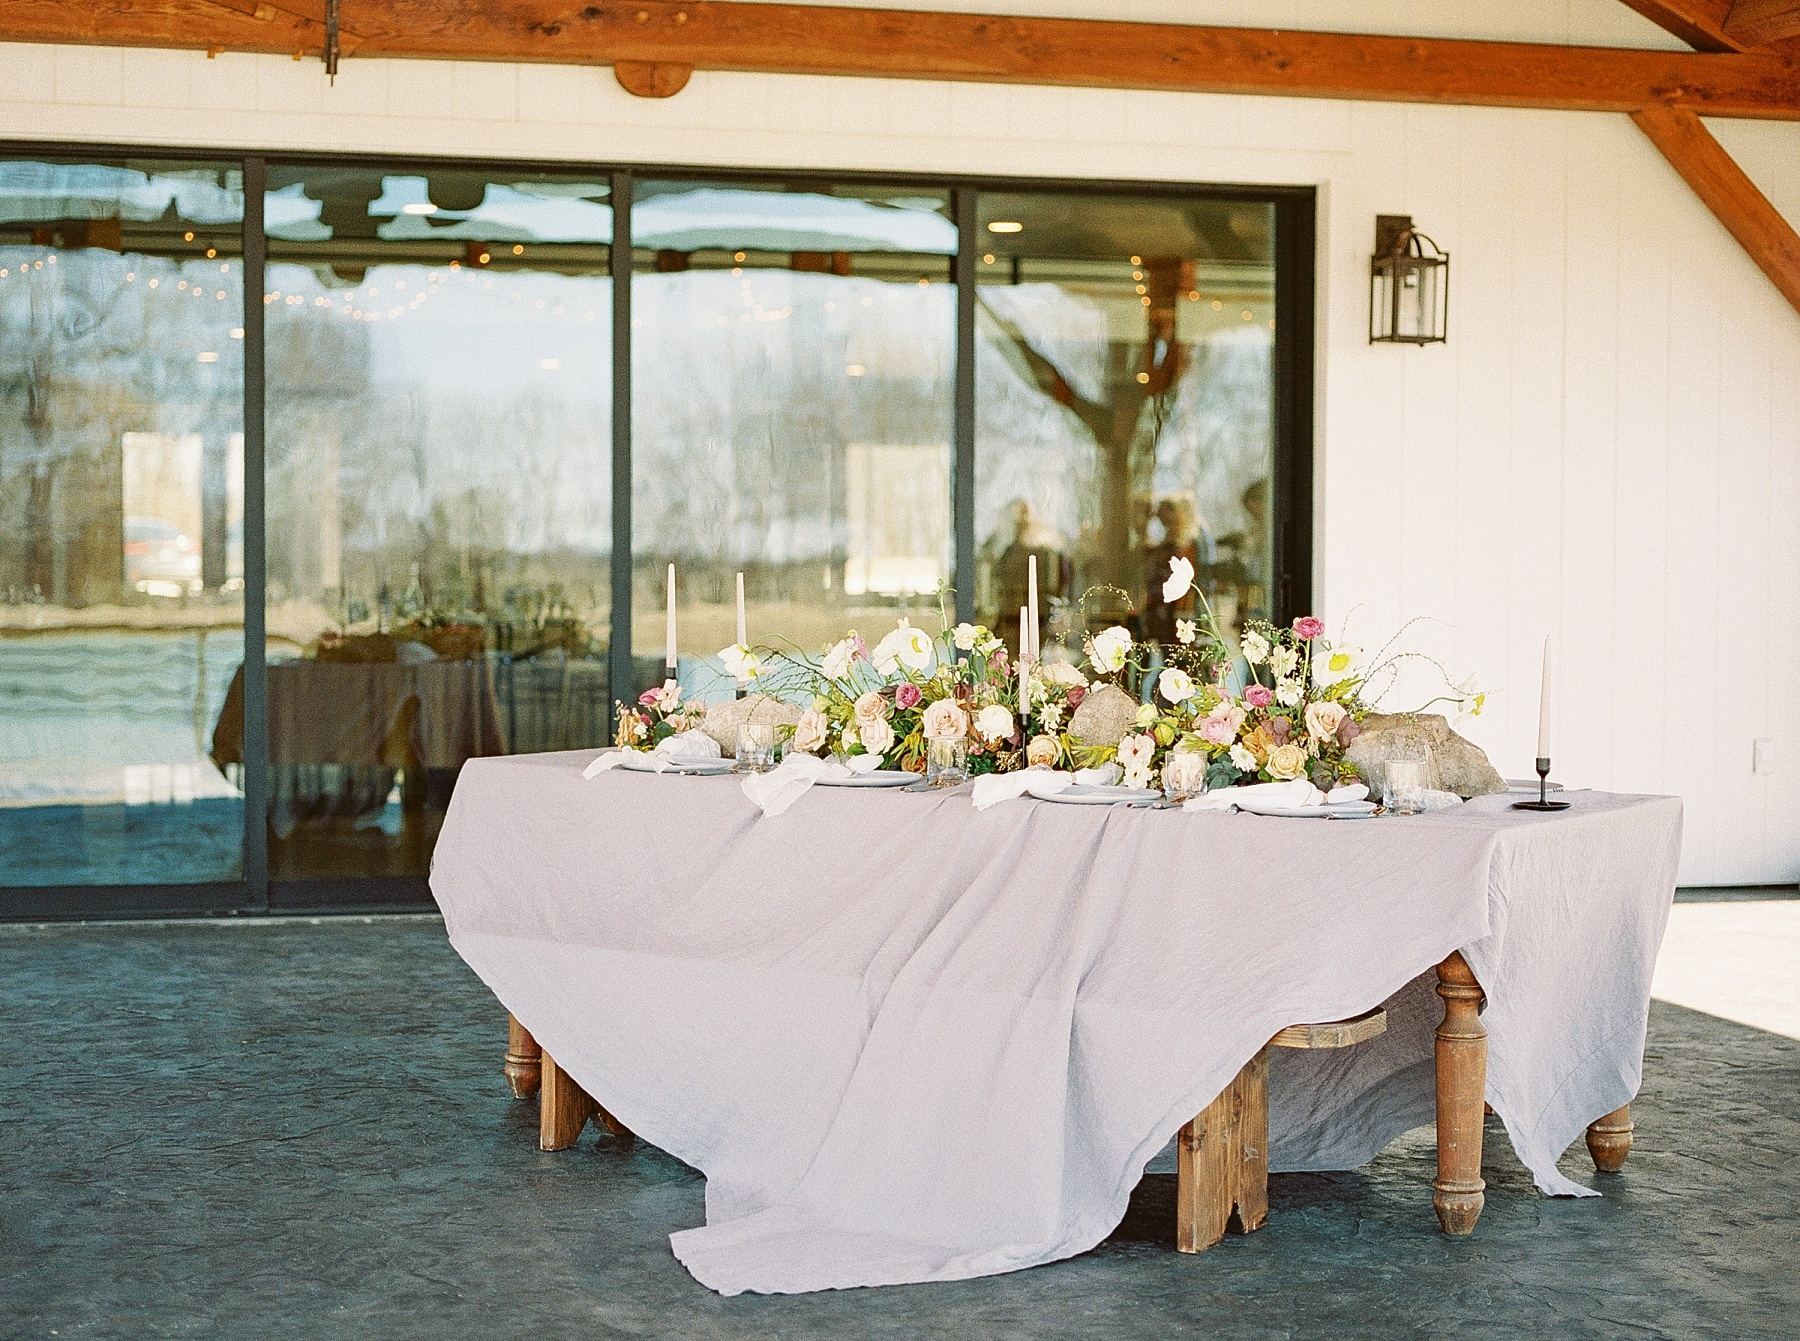 Lakeside Sunset Wedding with Magnificent Abundance of Blooms at Emerson Fields by Kelsi Kliethermes Photography Best Missouri and Maui Wedding Photographer_0003.jpg